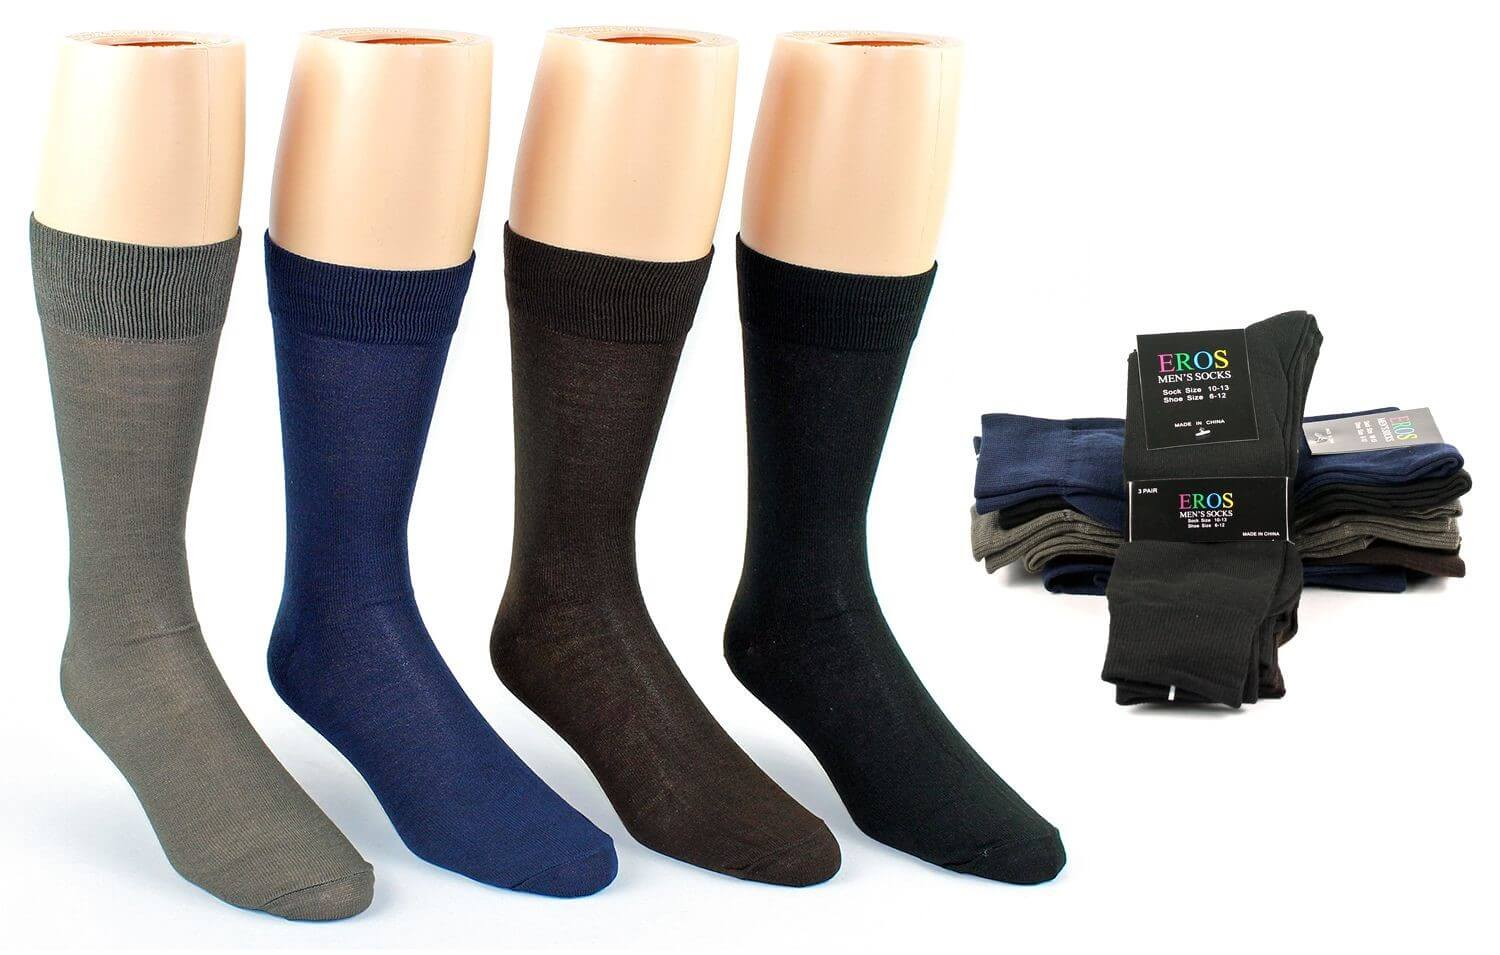 Men's Subscription - 2 Pairs - Crew Socks - 12 months